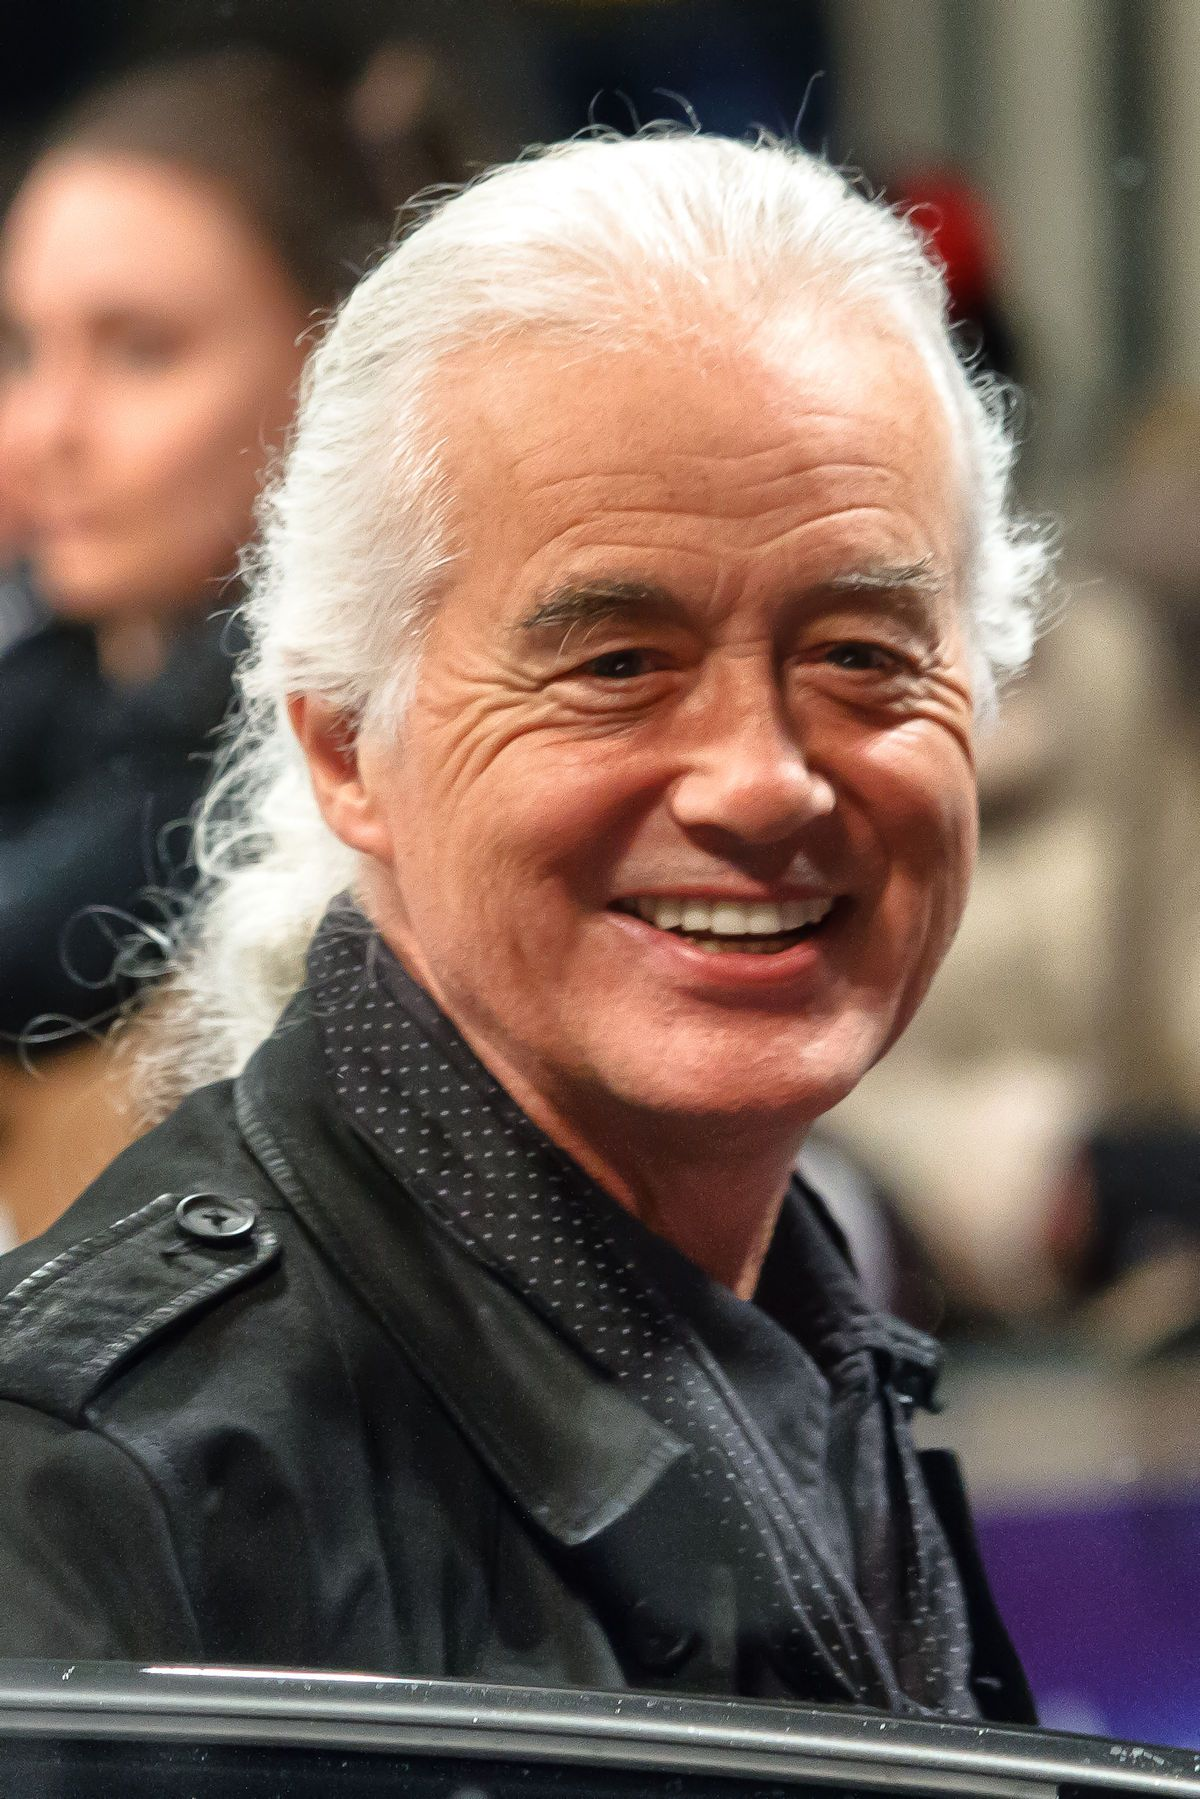 Jimmy Page Of Led Zeppelin His Interest In The Occult Jimmy Page Led Zeppelin Record Producer